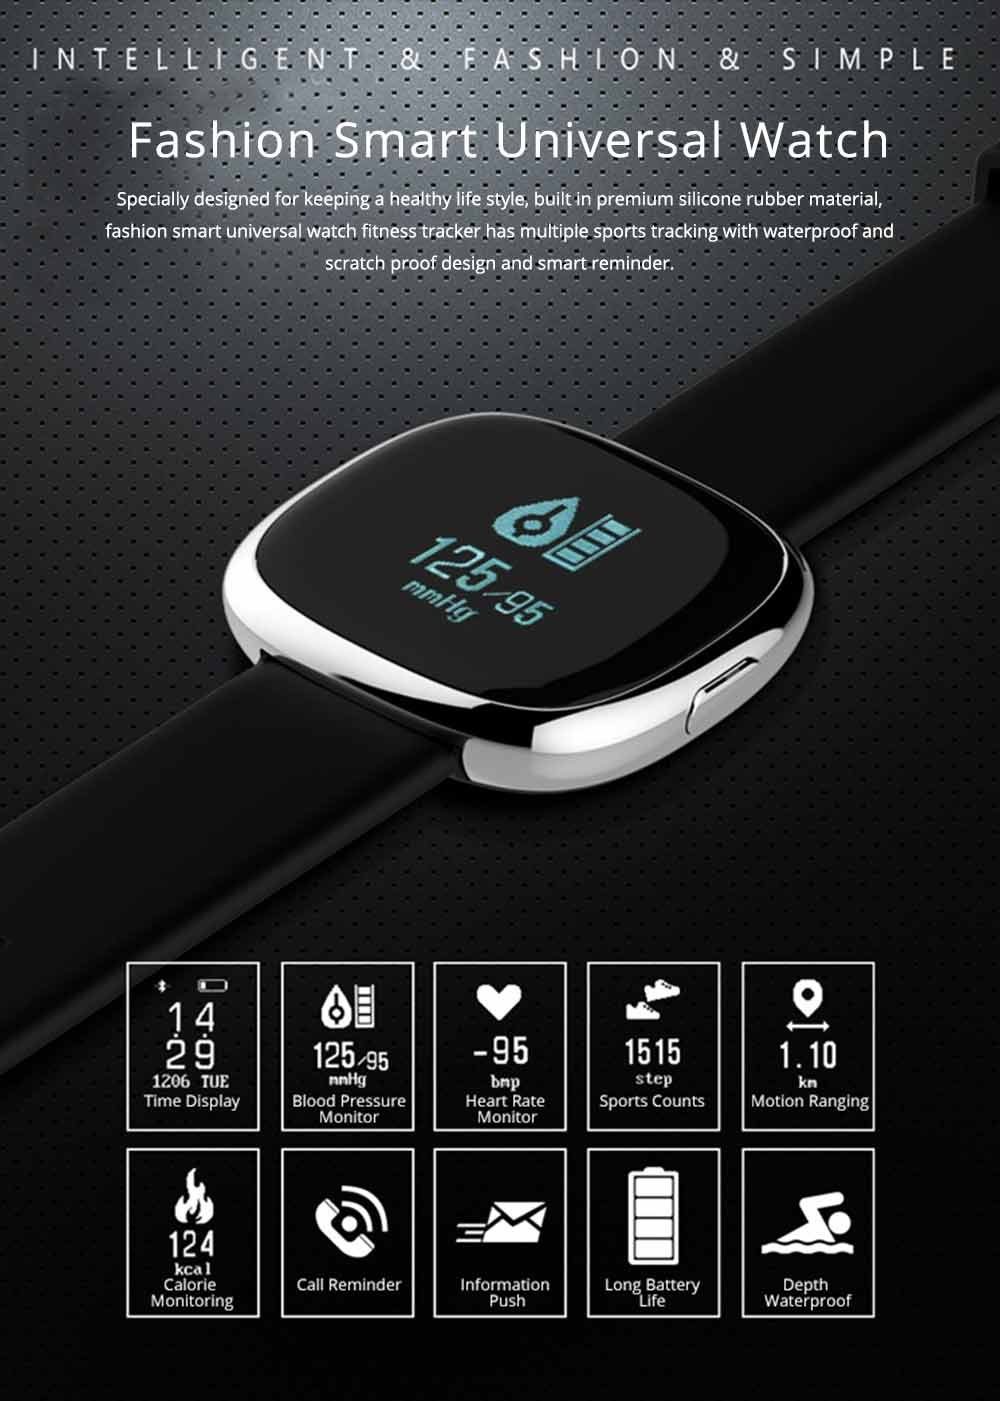 Fashion Smart Universal Watch Fitness Tracker for GPS Positioning Function and Heart Rate Monitoring 0